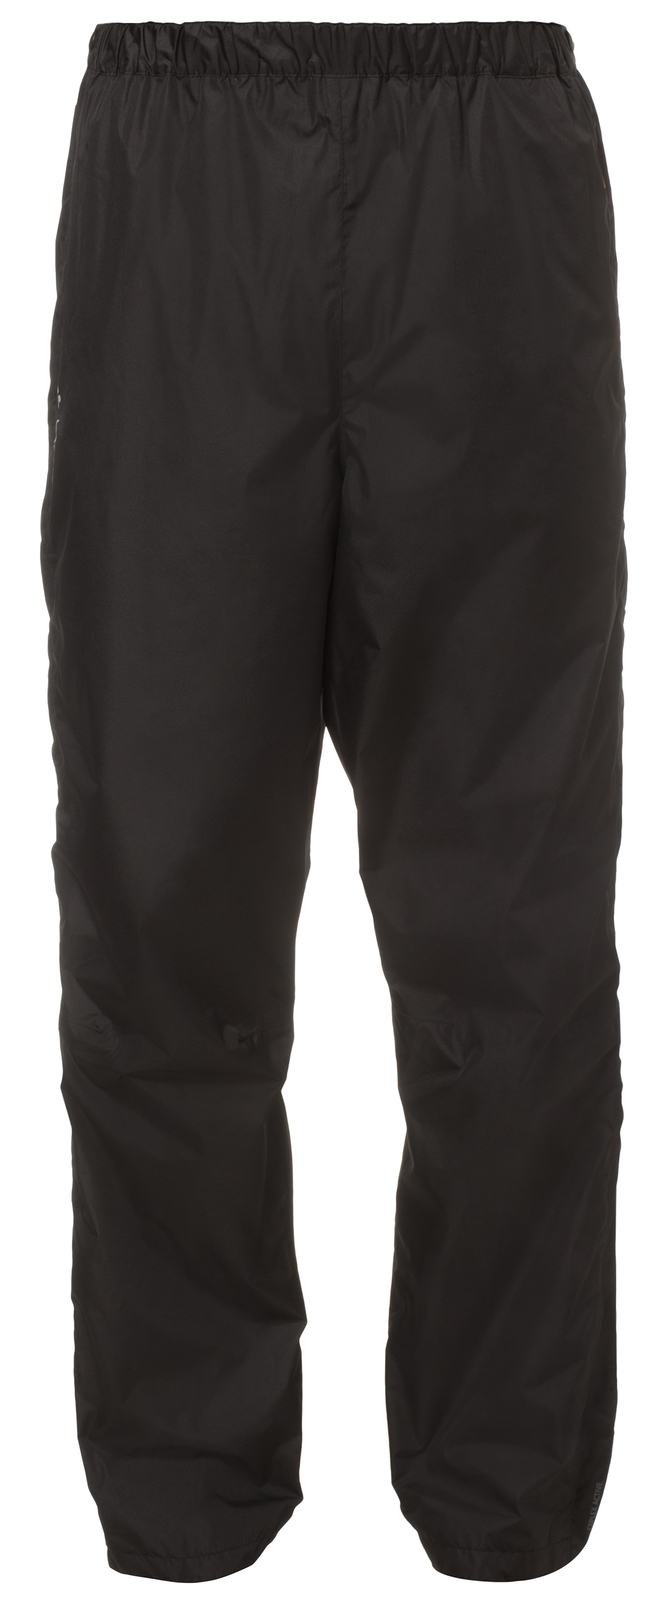 VAUDE Men´s Fluid Full-zip Pants II black Größe XL - Total Normal Bikes - Onlineshop und E-Bike Fahrradgeschäft in St.Ingbert im Saarland